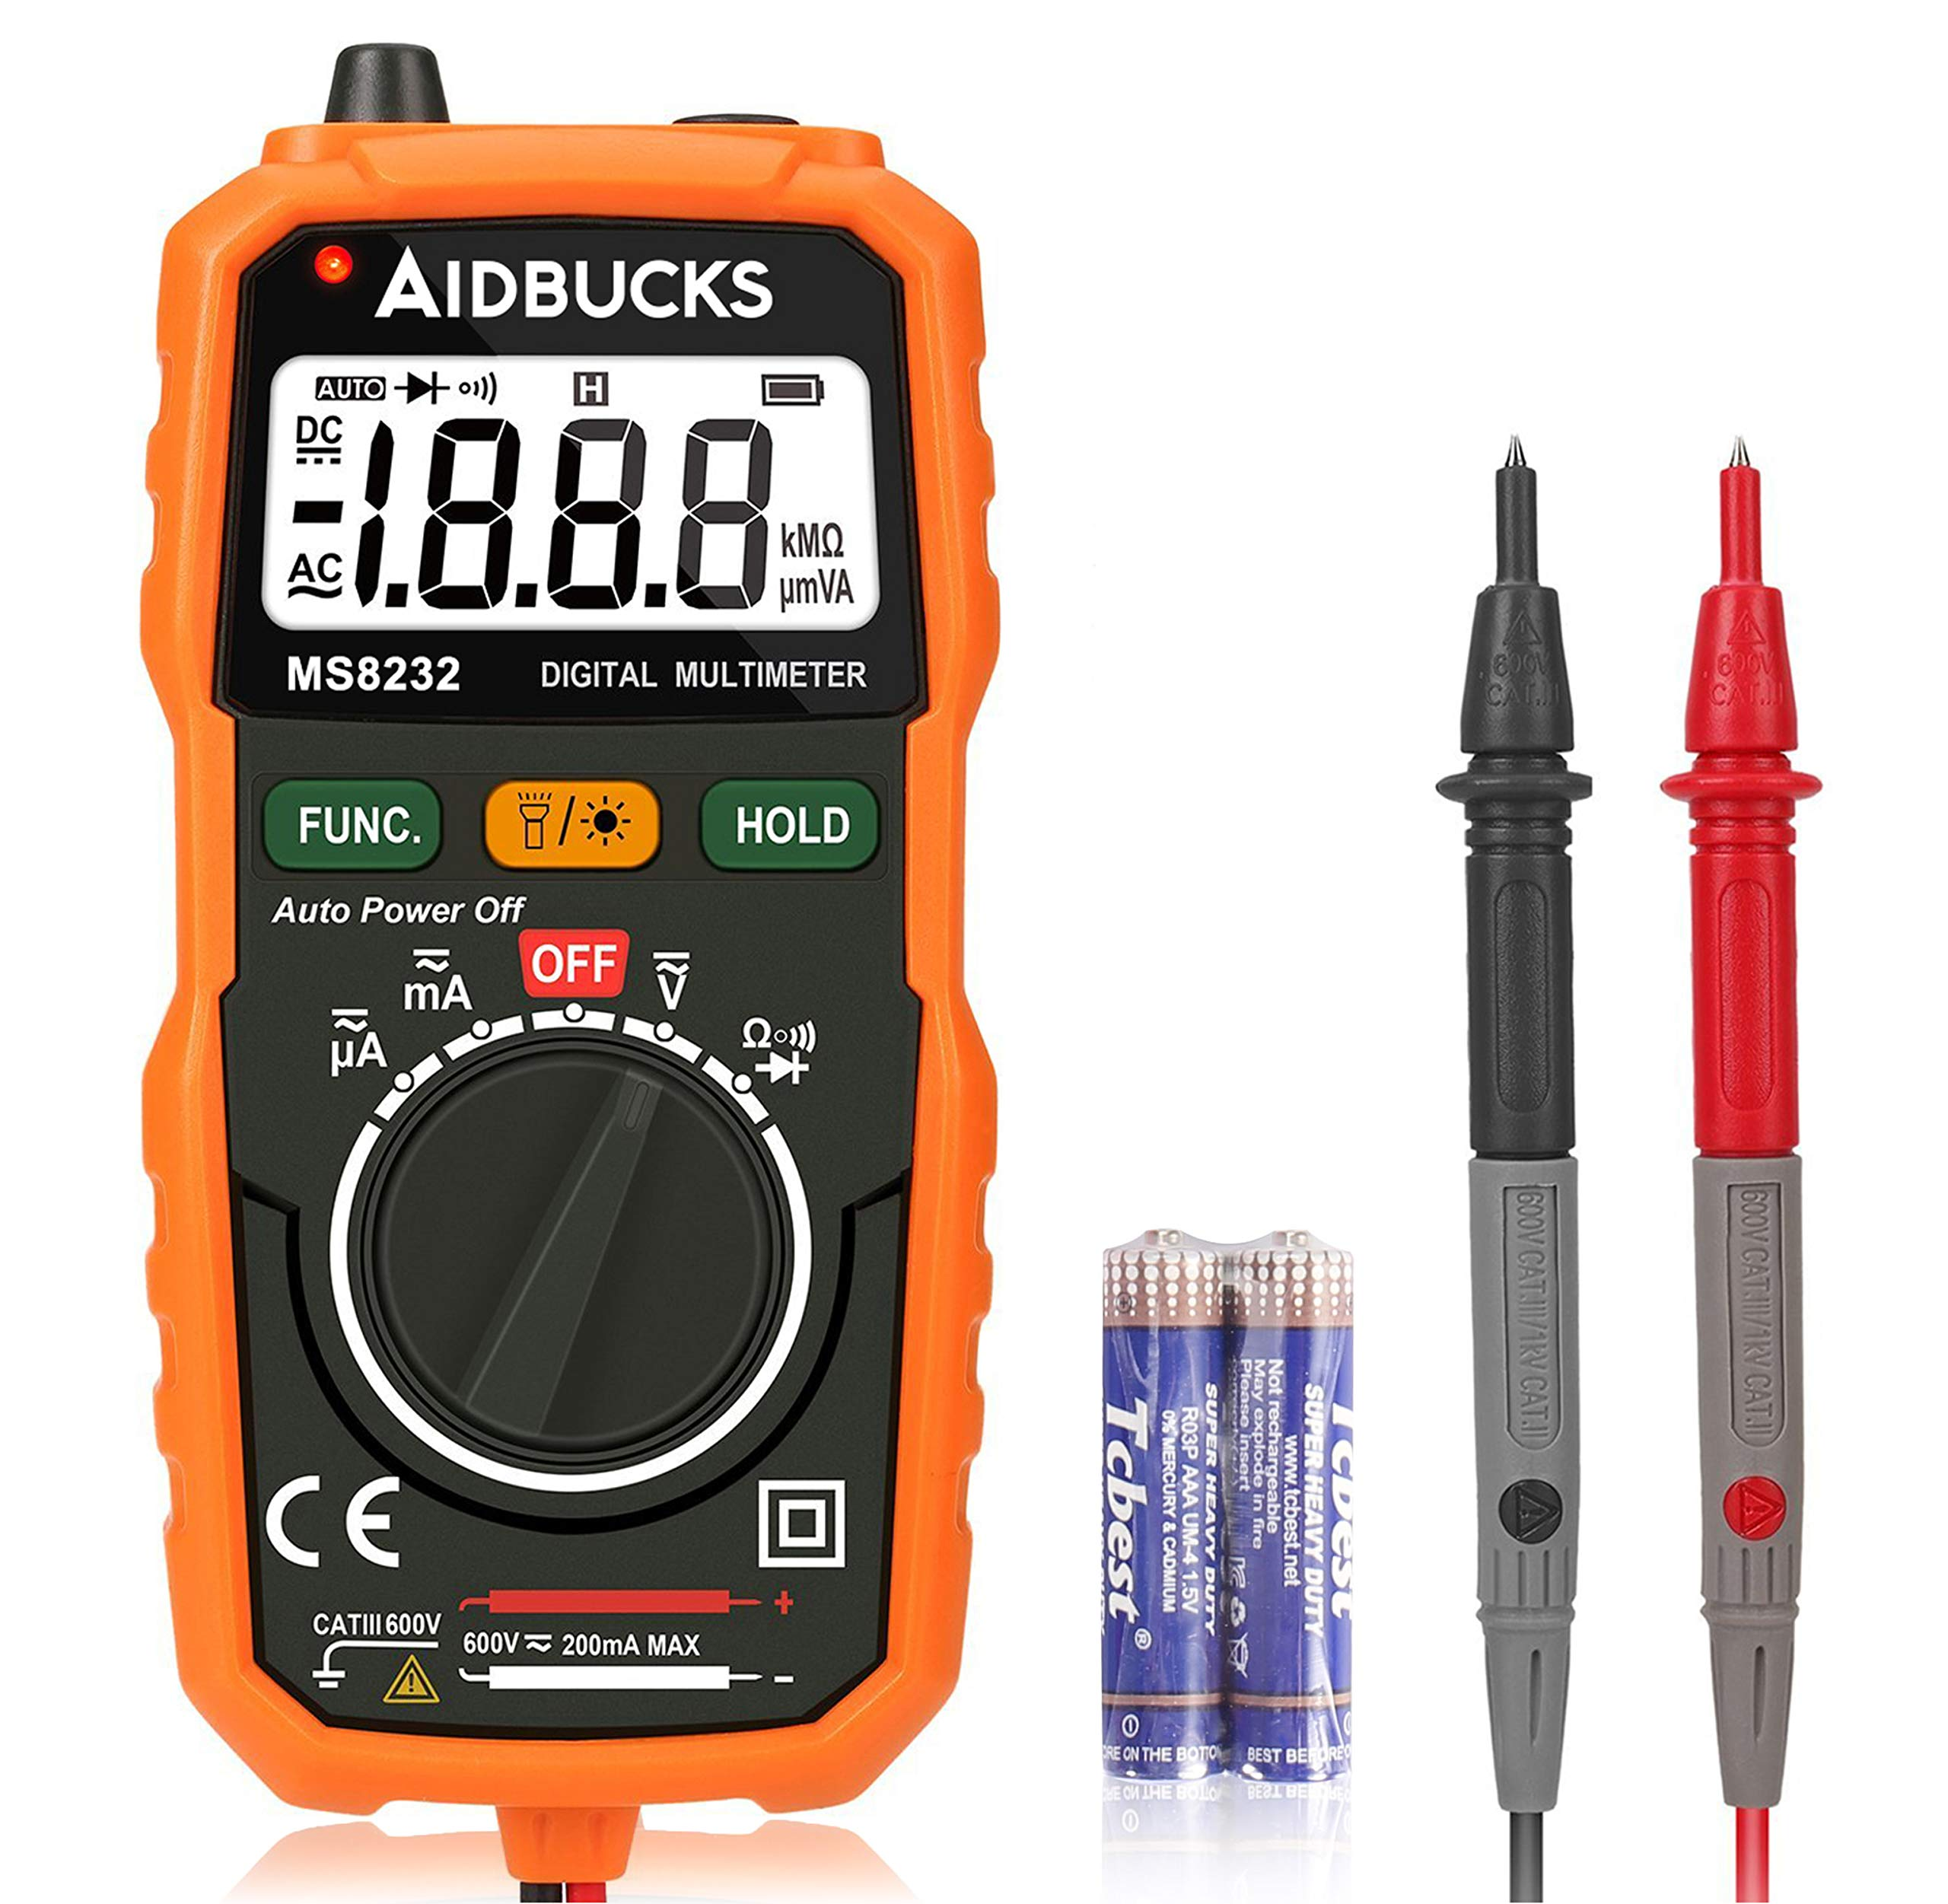 Digital Multimeter Auto Ranging Non Contact Voltage Detector Electrical Multi Circuit Volt Ohm Tester AC/DC Battery Tester Ammeter Voltmeter Current Continuity Resistance Test Meter by Aidbucks MS8232